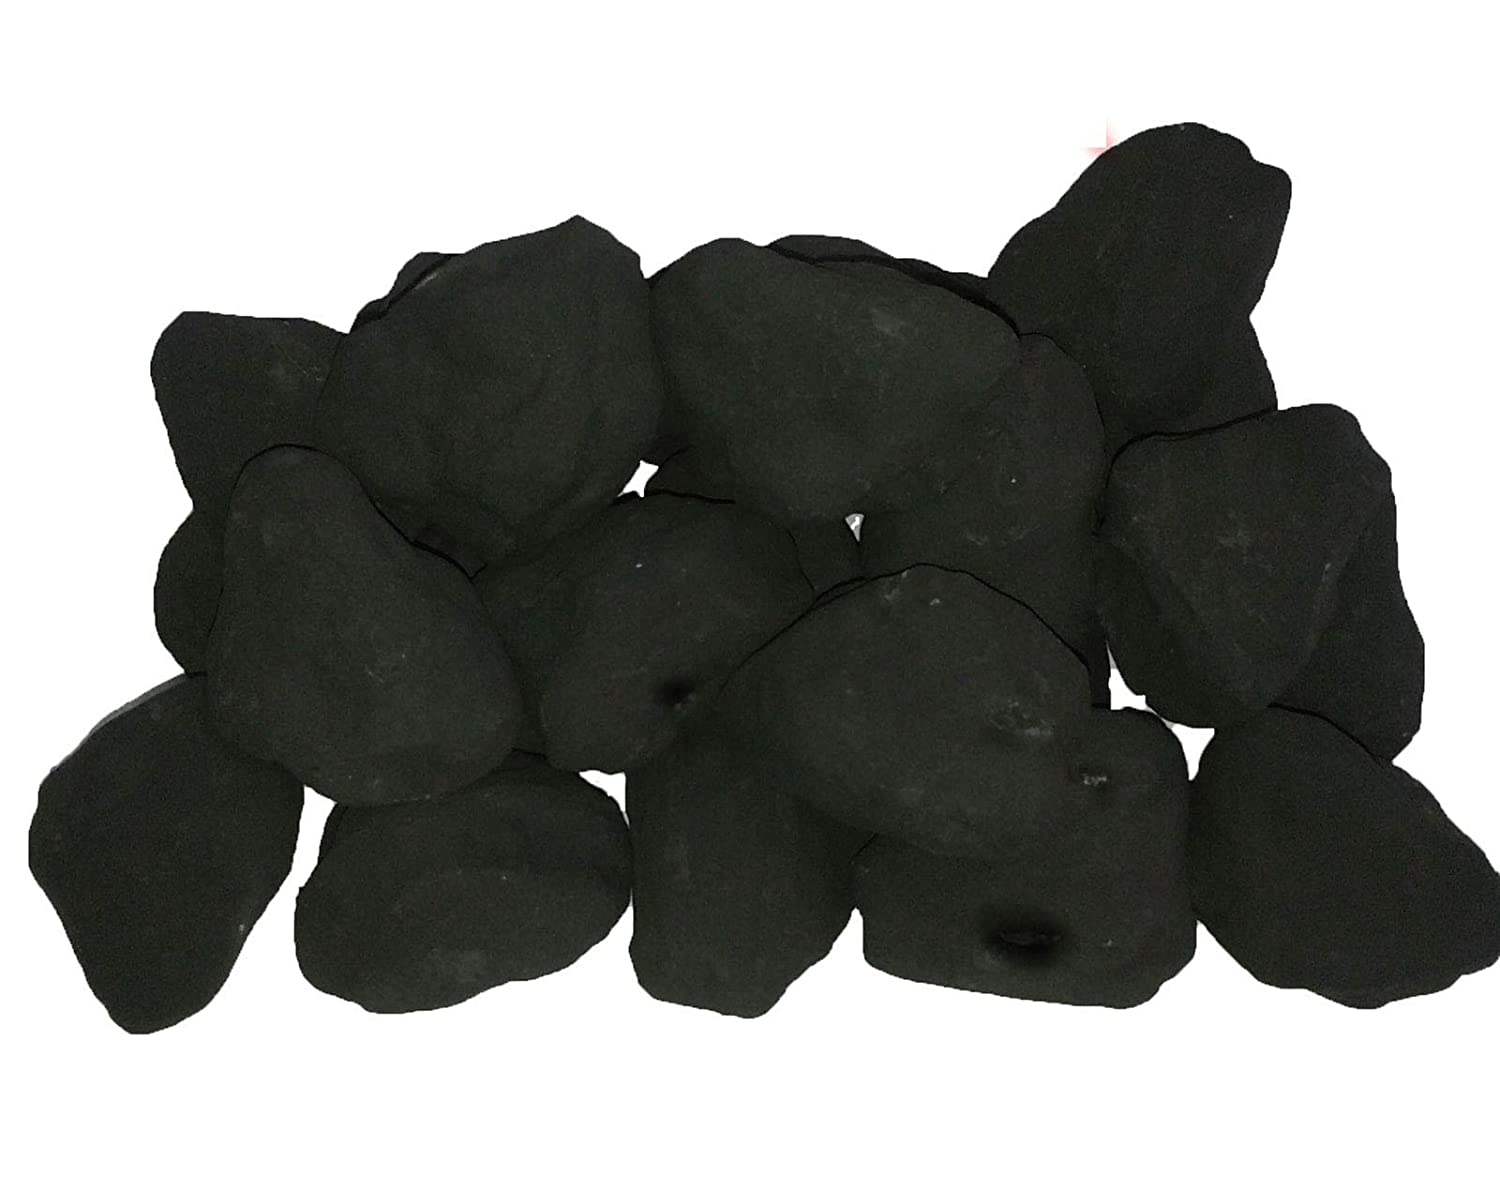 14 Gas Fire Ceramic Large Cast Coals Replacement Replacements/Bio Fuels/Ceramic/Boxed BY COALS 4 YOU